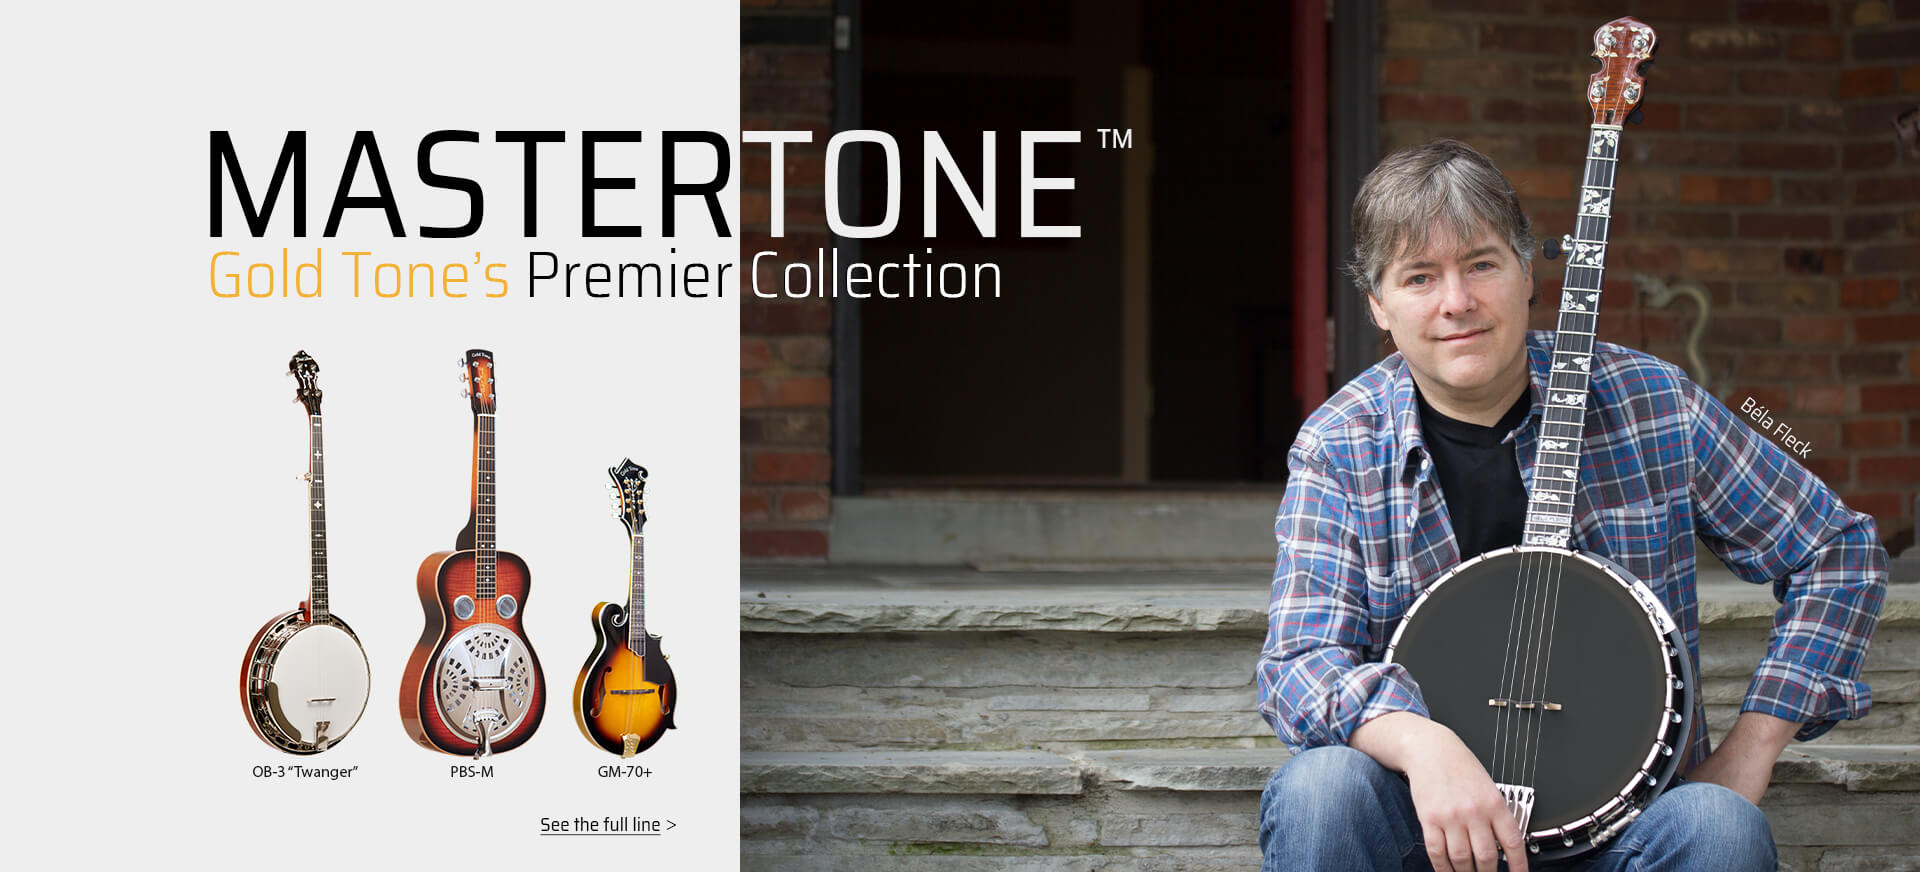 Mastertone, Gold Tone's premier collection. See more